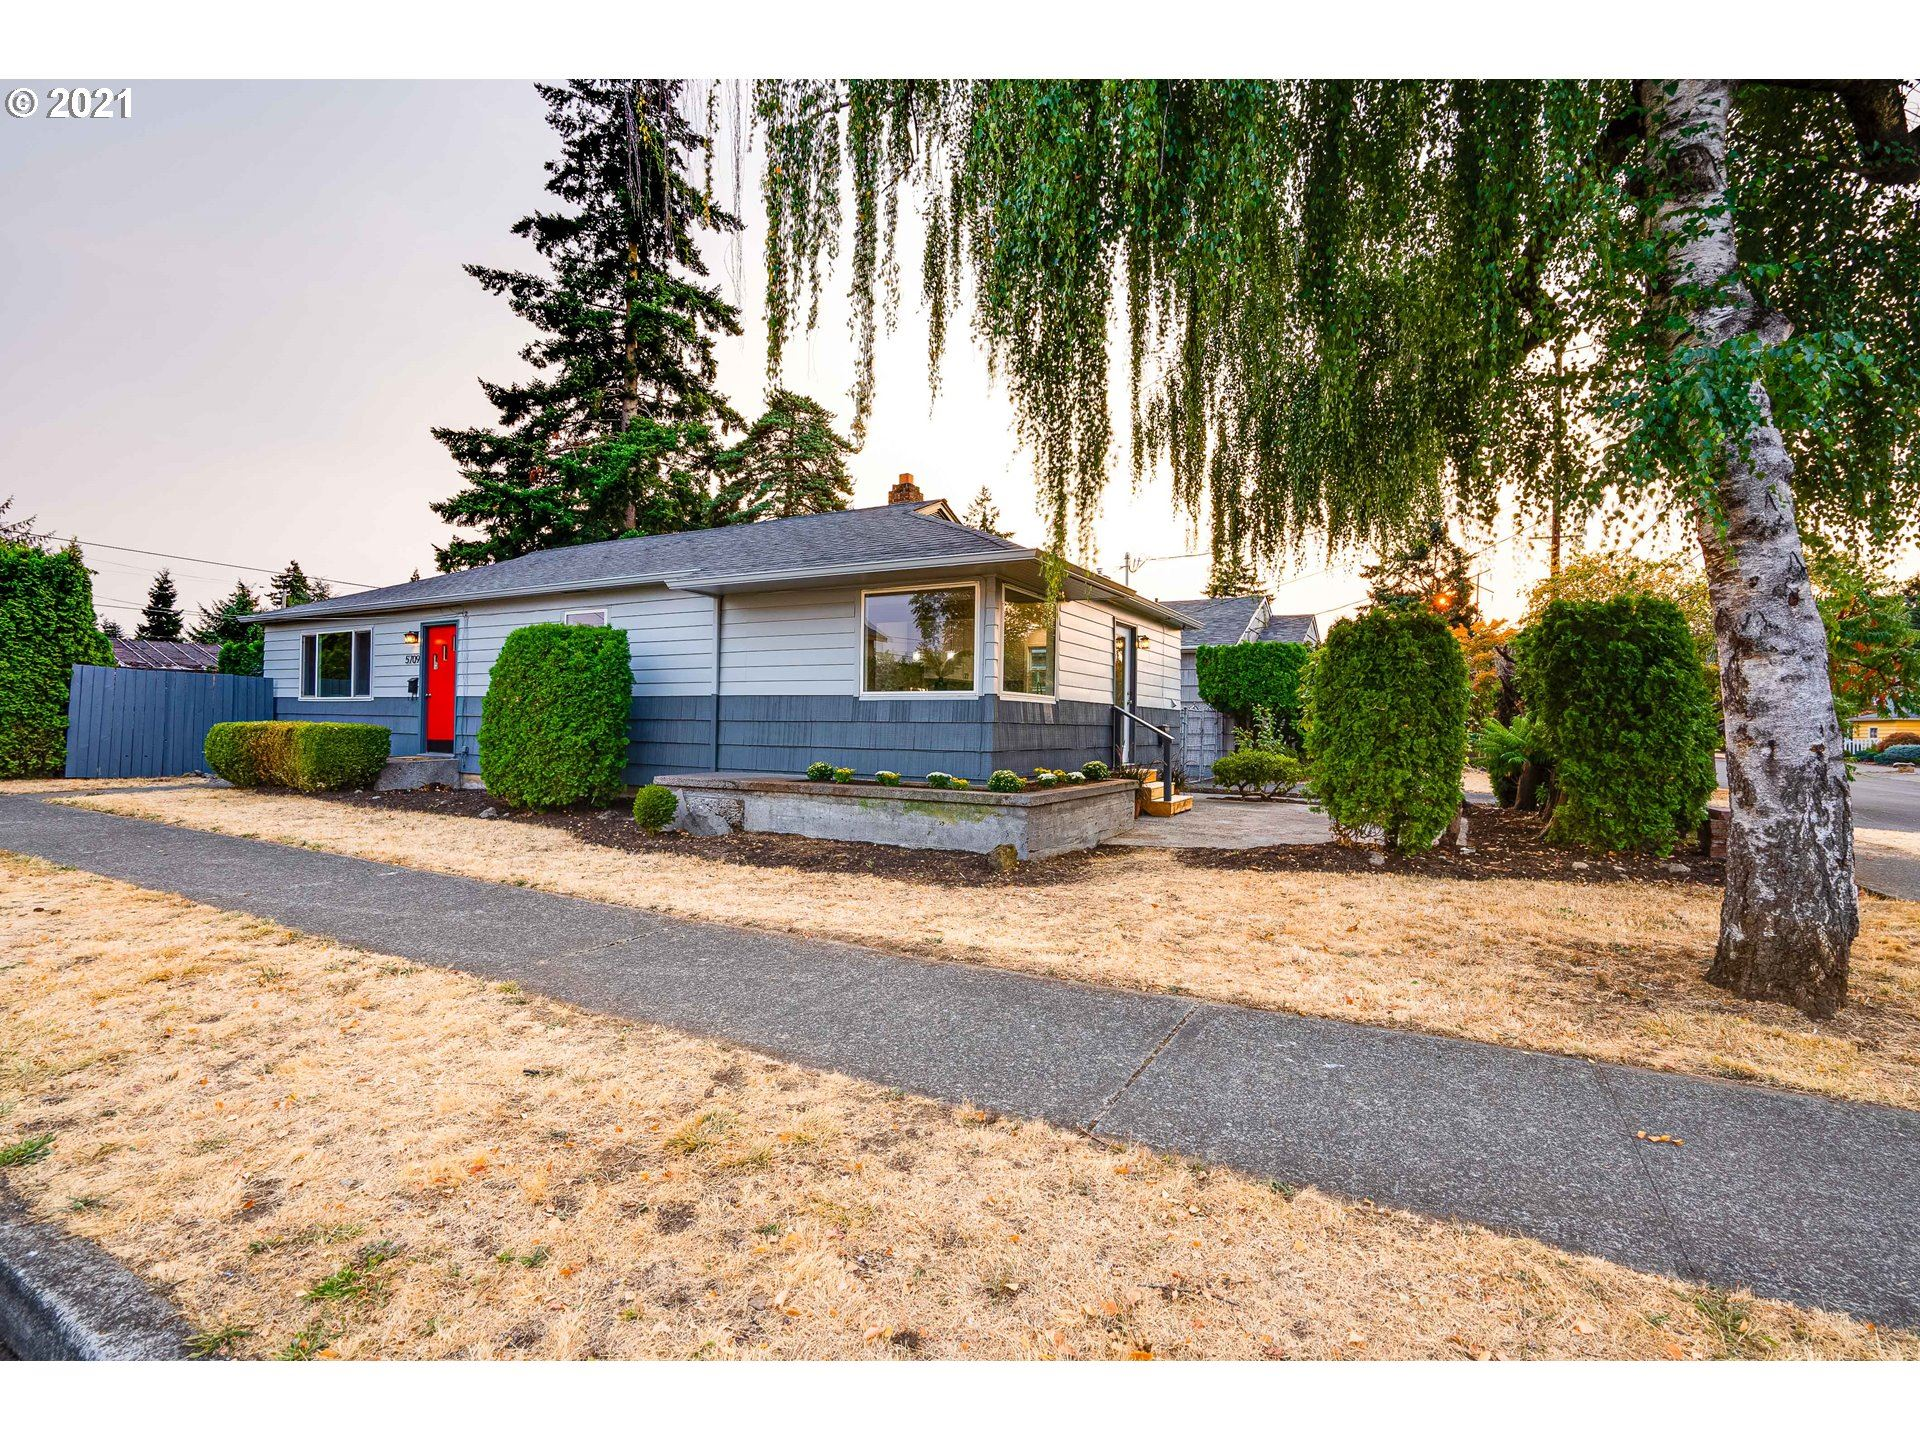 5709 SE 65TH AVE, Portland, OR 97206 - MLS#: 21416371